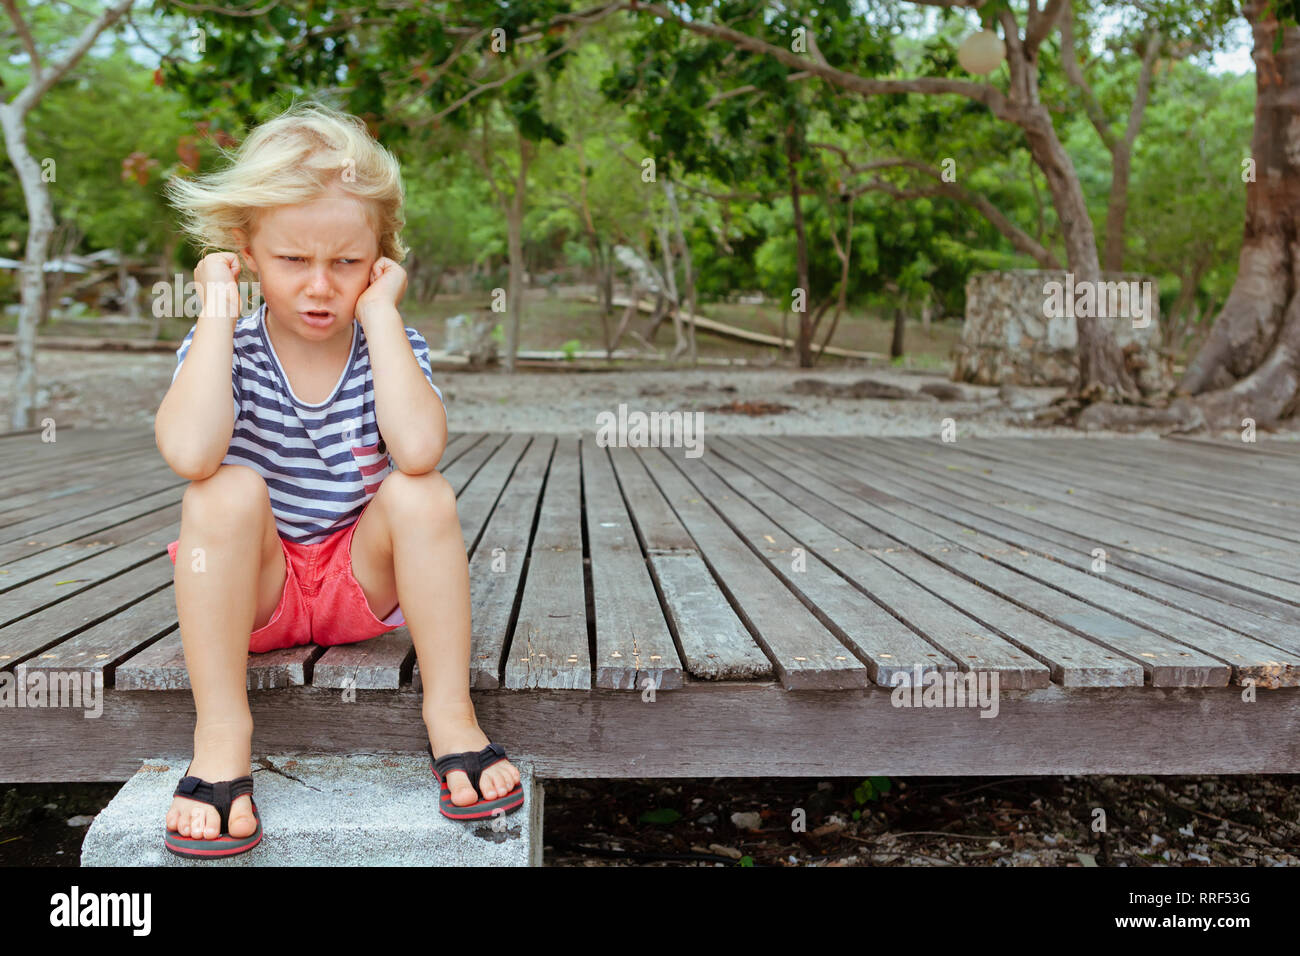 Funny portrait of caucasian kid looking annoyed and unhappy. Upset and angry child concept for family relations, social problems issues - Stock Image